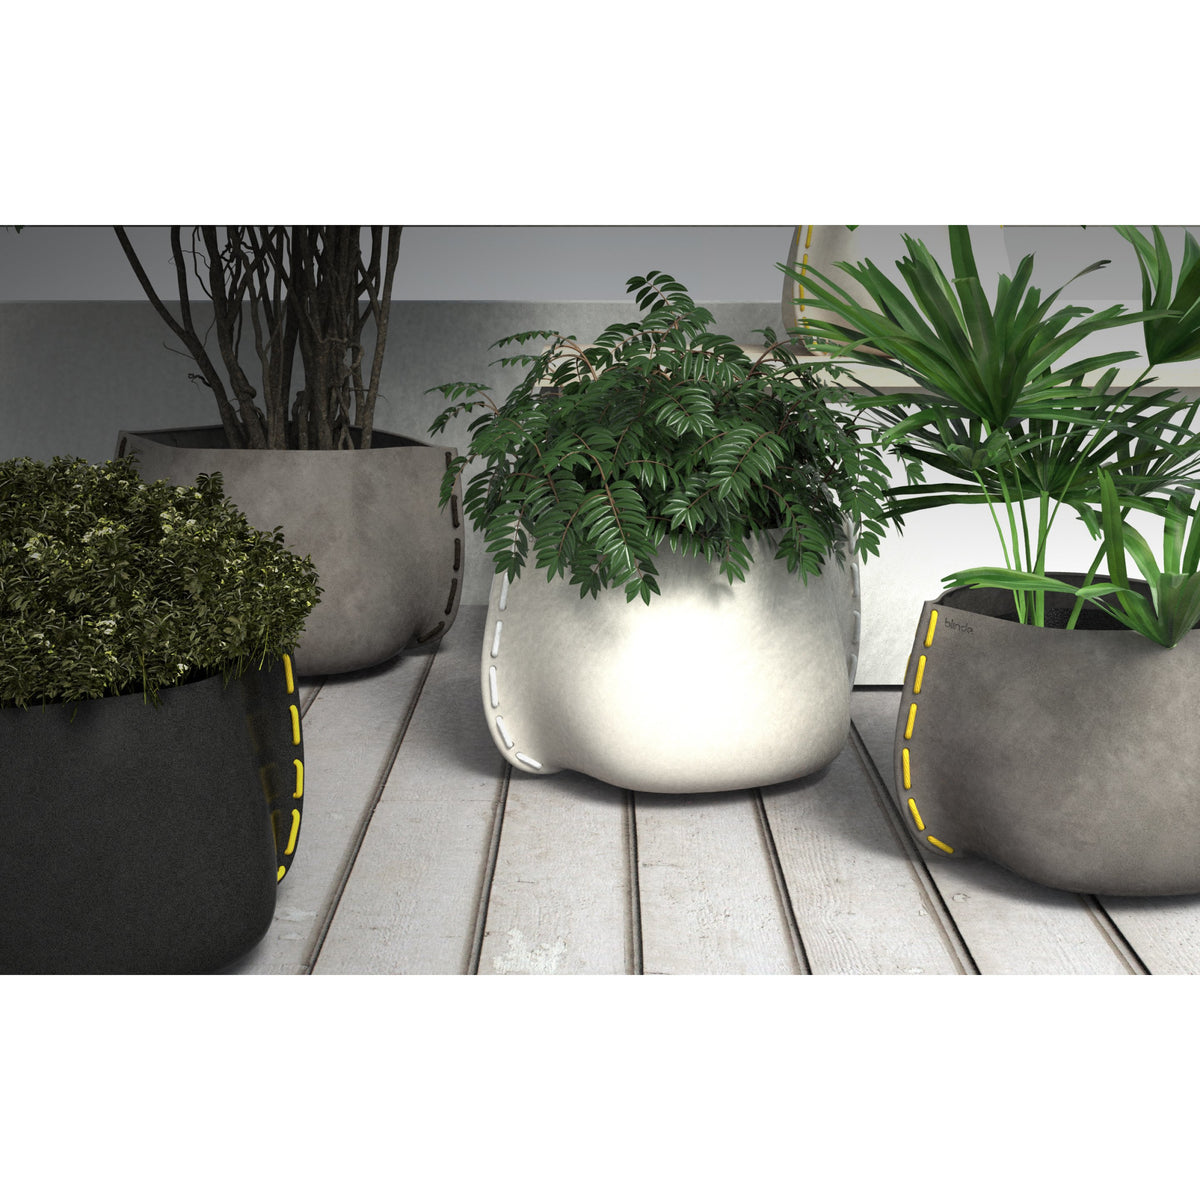 Stitch 100 Designer Pot Plant - Outdoor Living Essentials